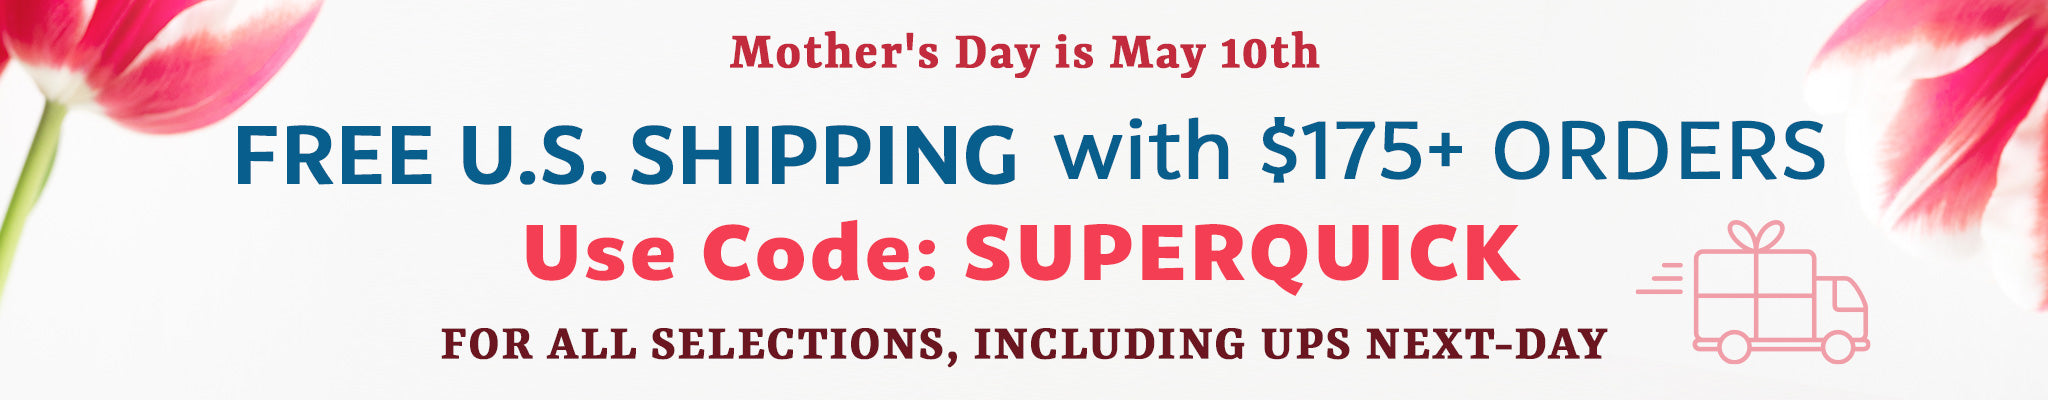 Mother's Day is May 10th | FREE U.S. Shipping with $175+ Orders | Use Code: SUPERQUICK | For All Selections, including UPS Next-Day